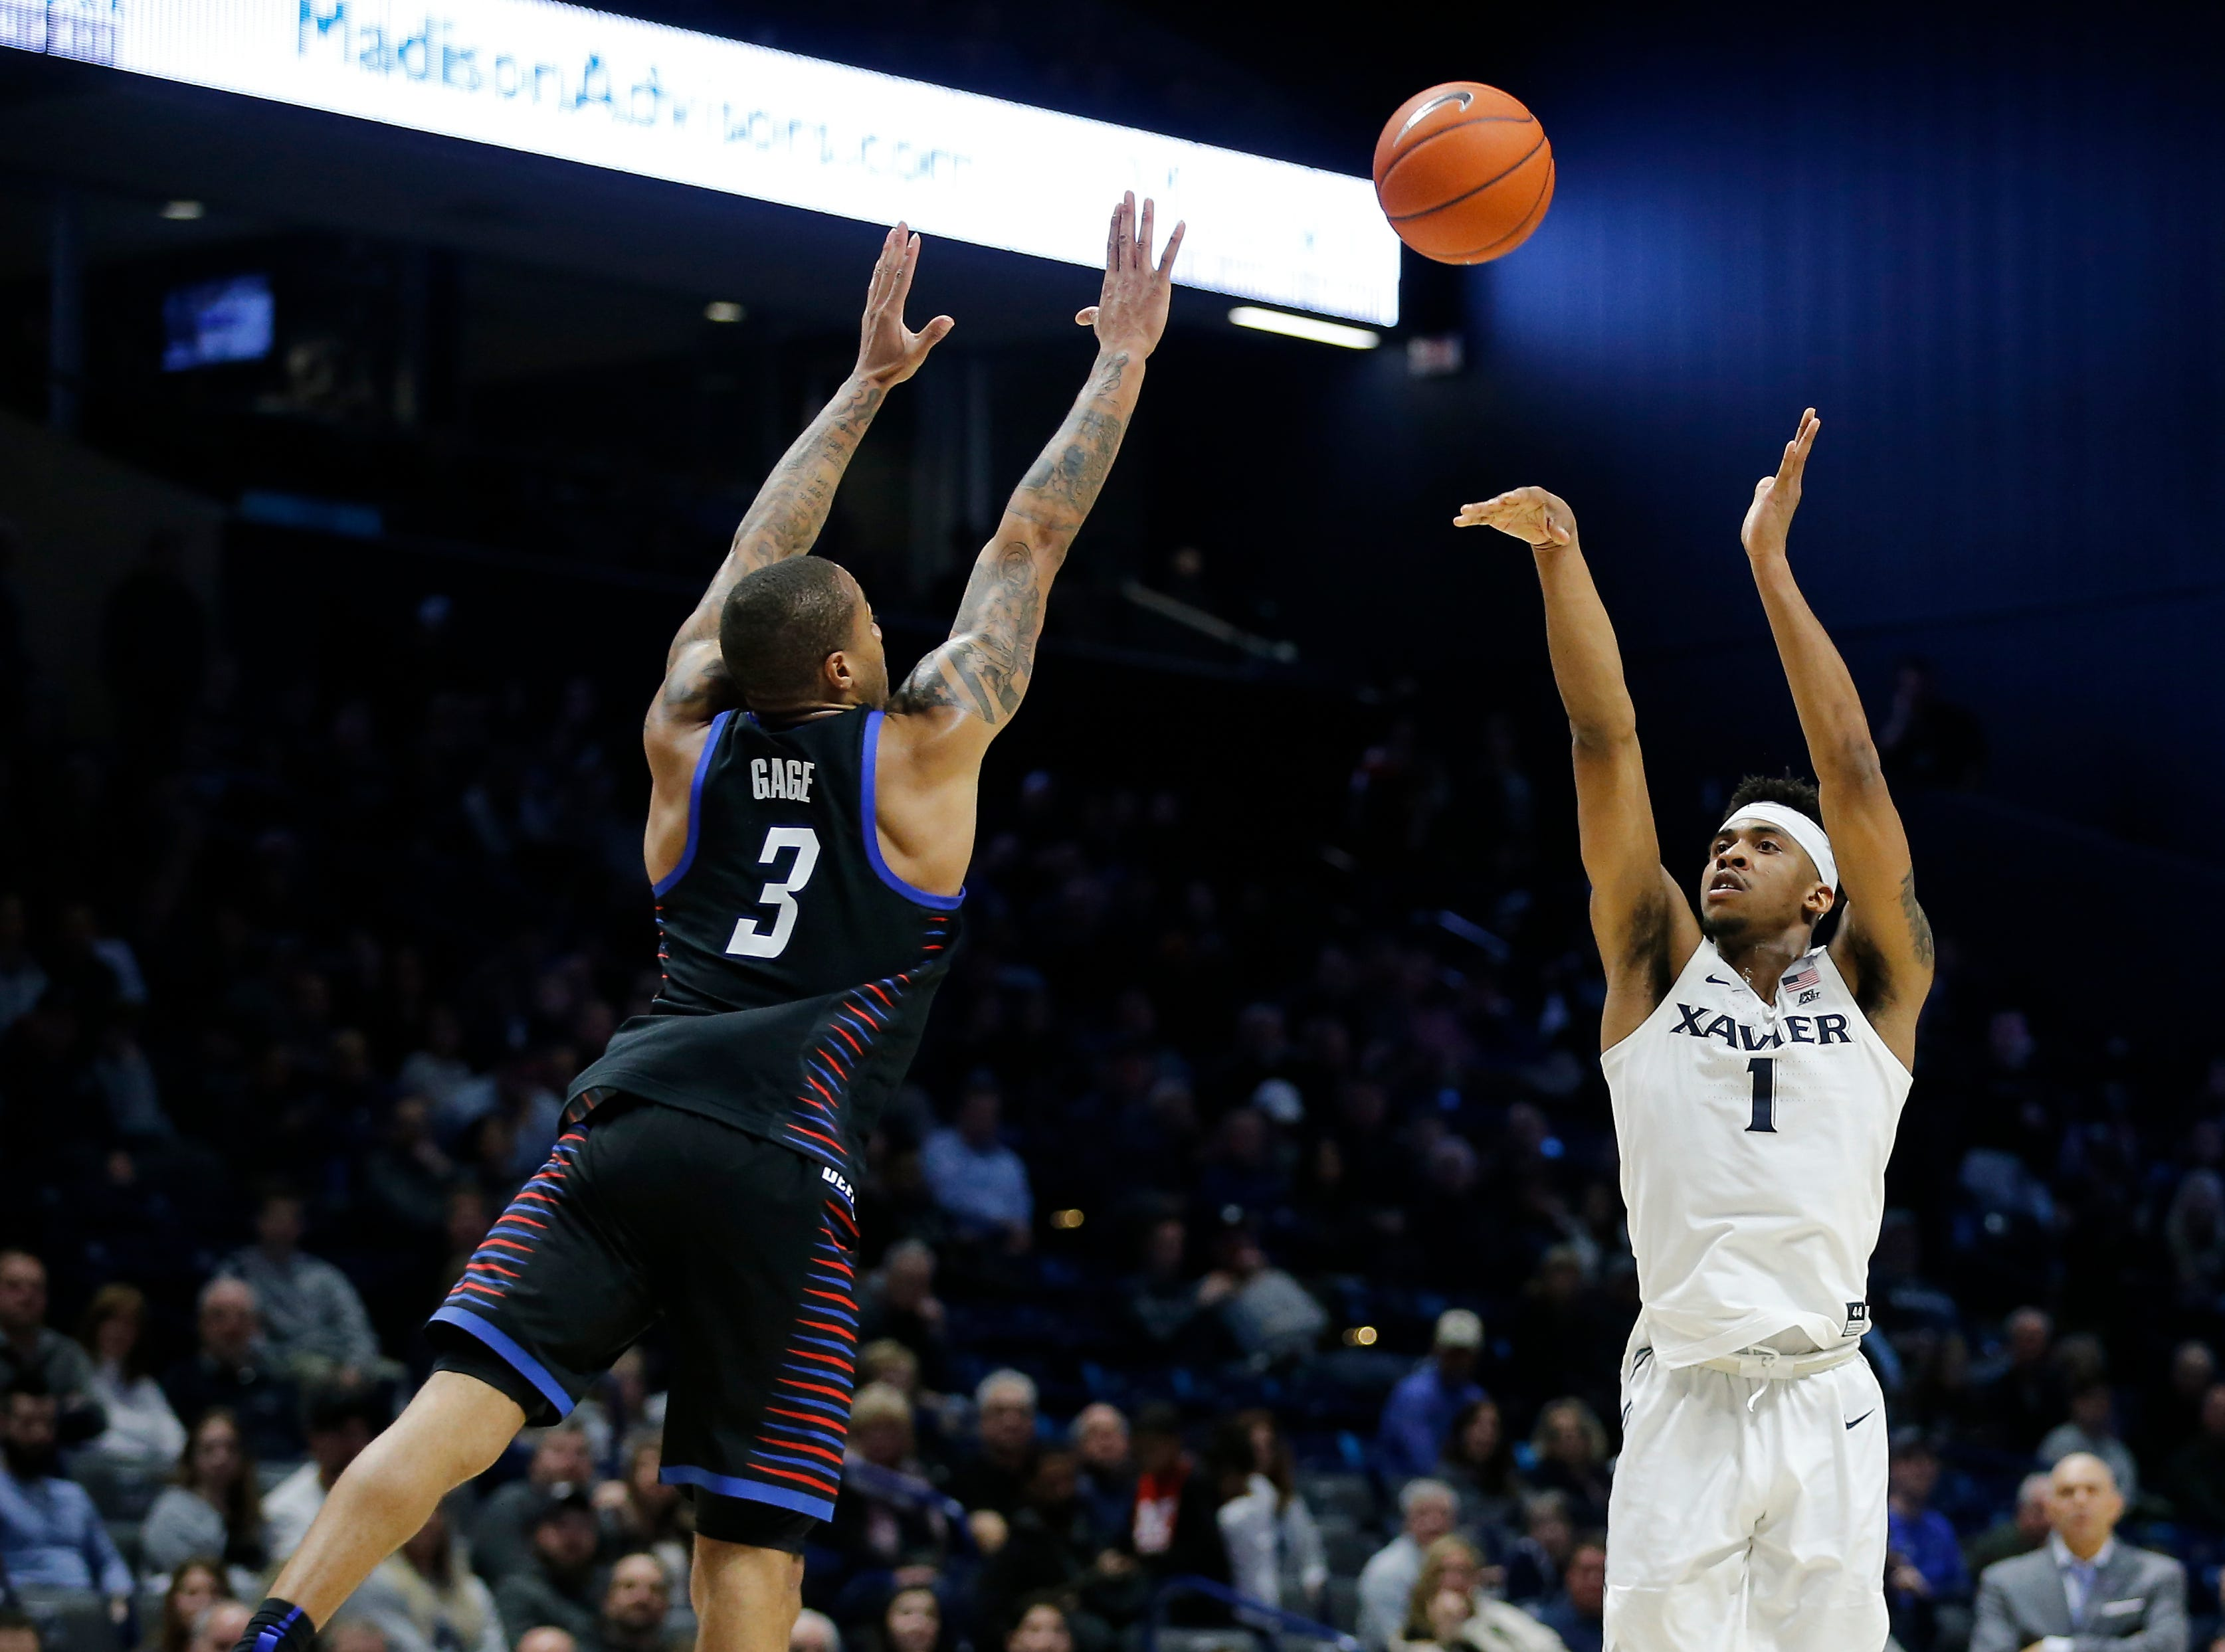 Xavier Musketeers guard Paul Scruggs (1) shoots over DePaul Blue Demons guard Devin Gage (3) in the second half of the NCAA Big East Conference game between the Xavier Musketeers and the DePaul Blue Demons at the Cintas Center in Cincinnati on Saturday, Feb. 9, 2019. Xavier lost its sixth game in a row, 74-62.